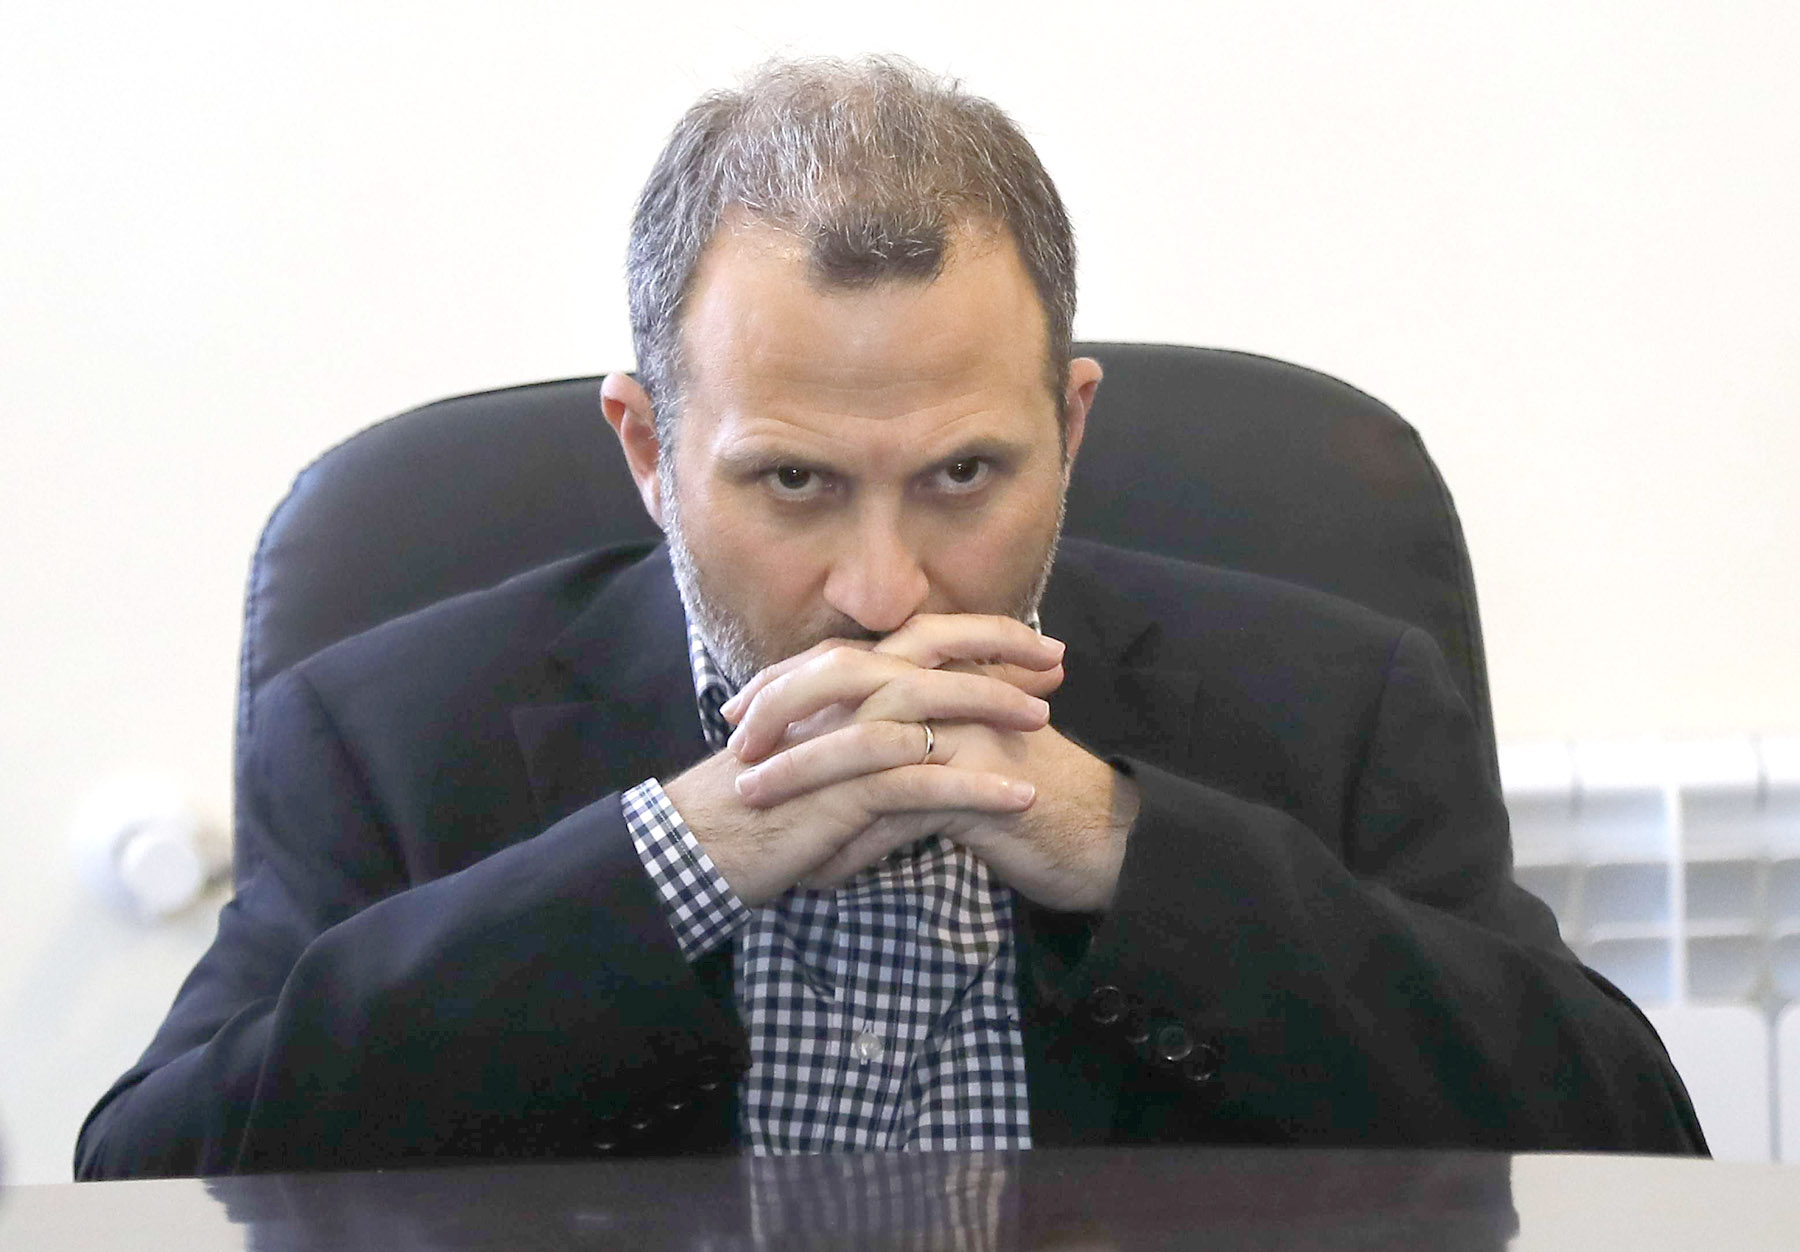 Lebanese Foreign Minister Gebran Bassil pauses during a news conference in Arsal near the border with Syria, last June. (AP)